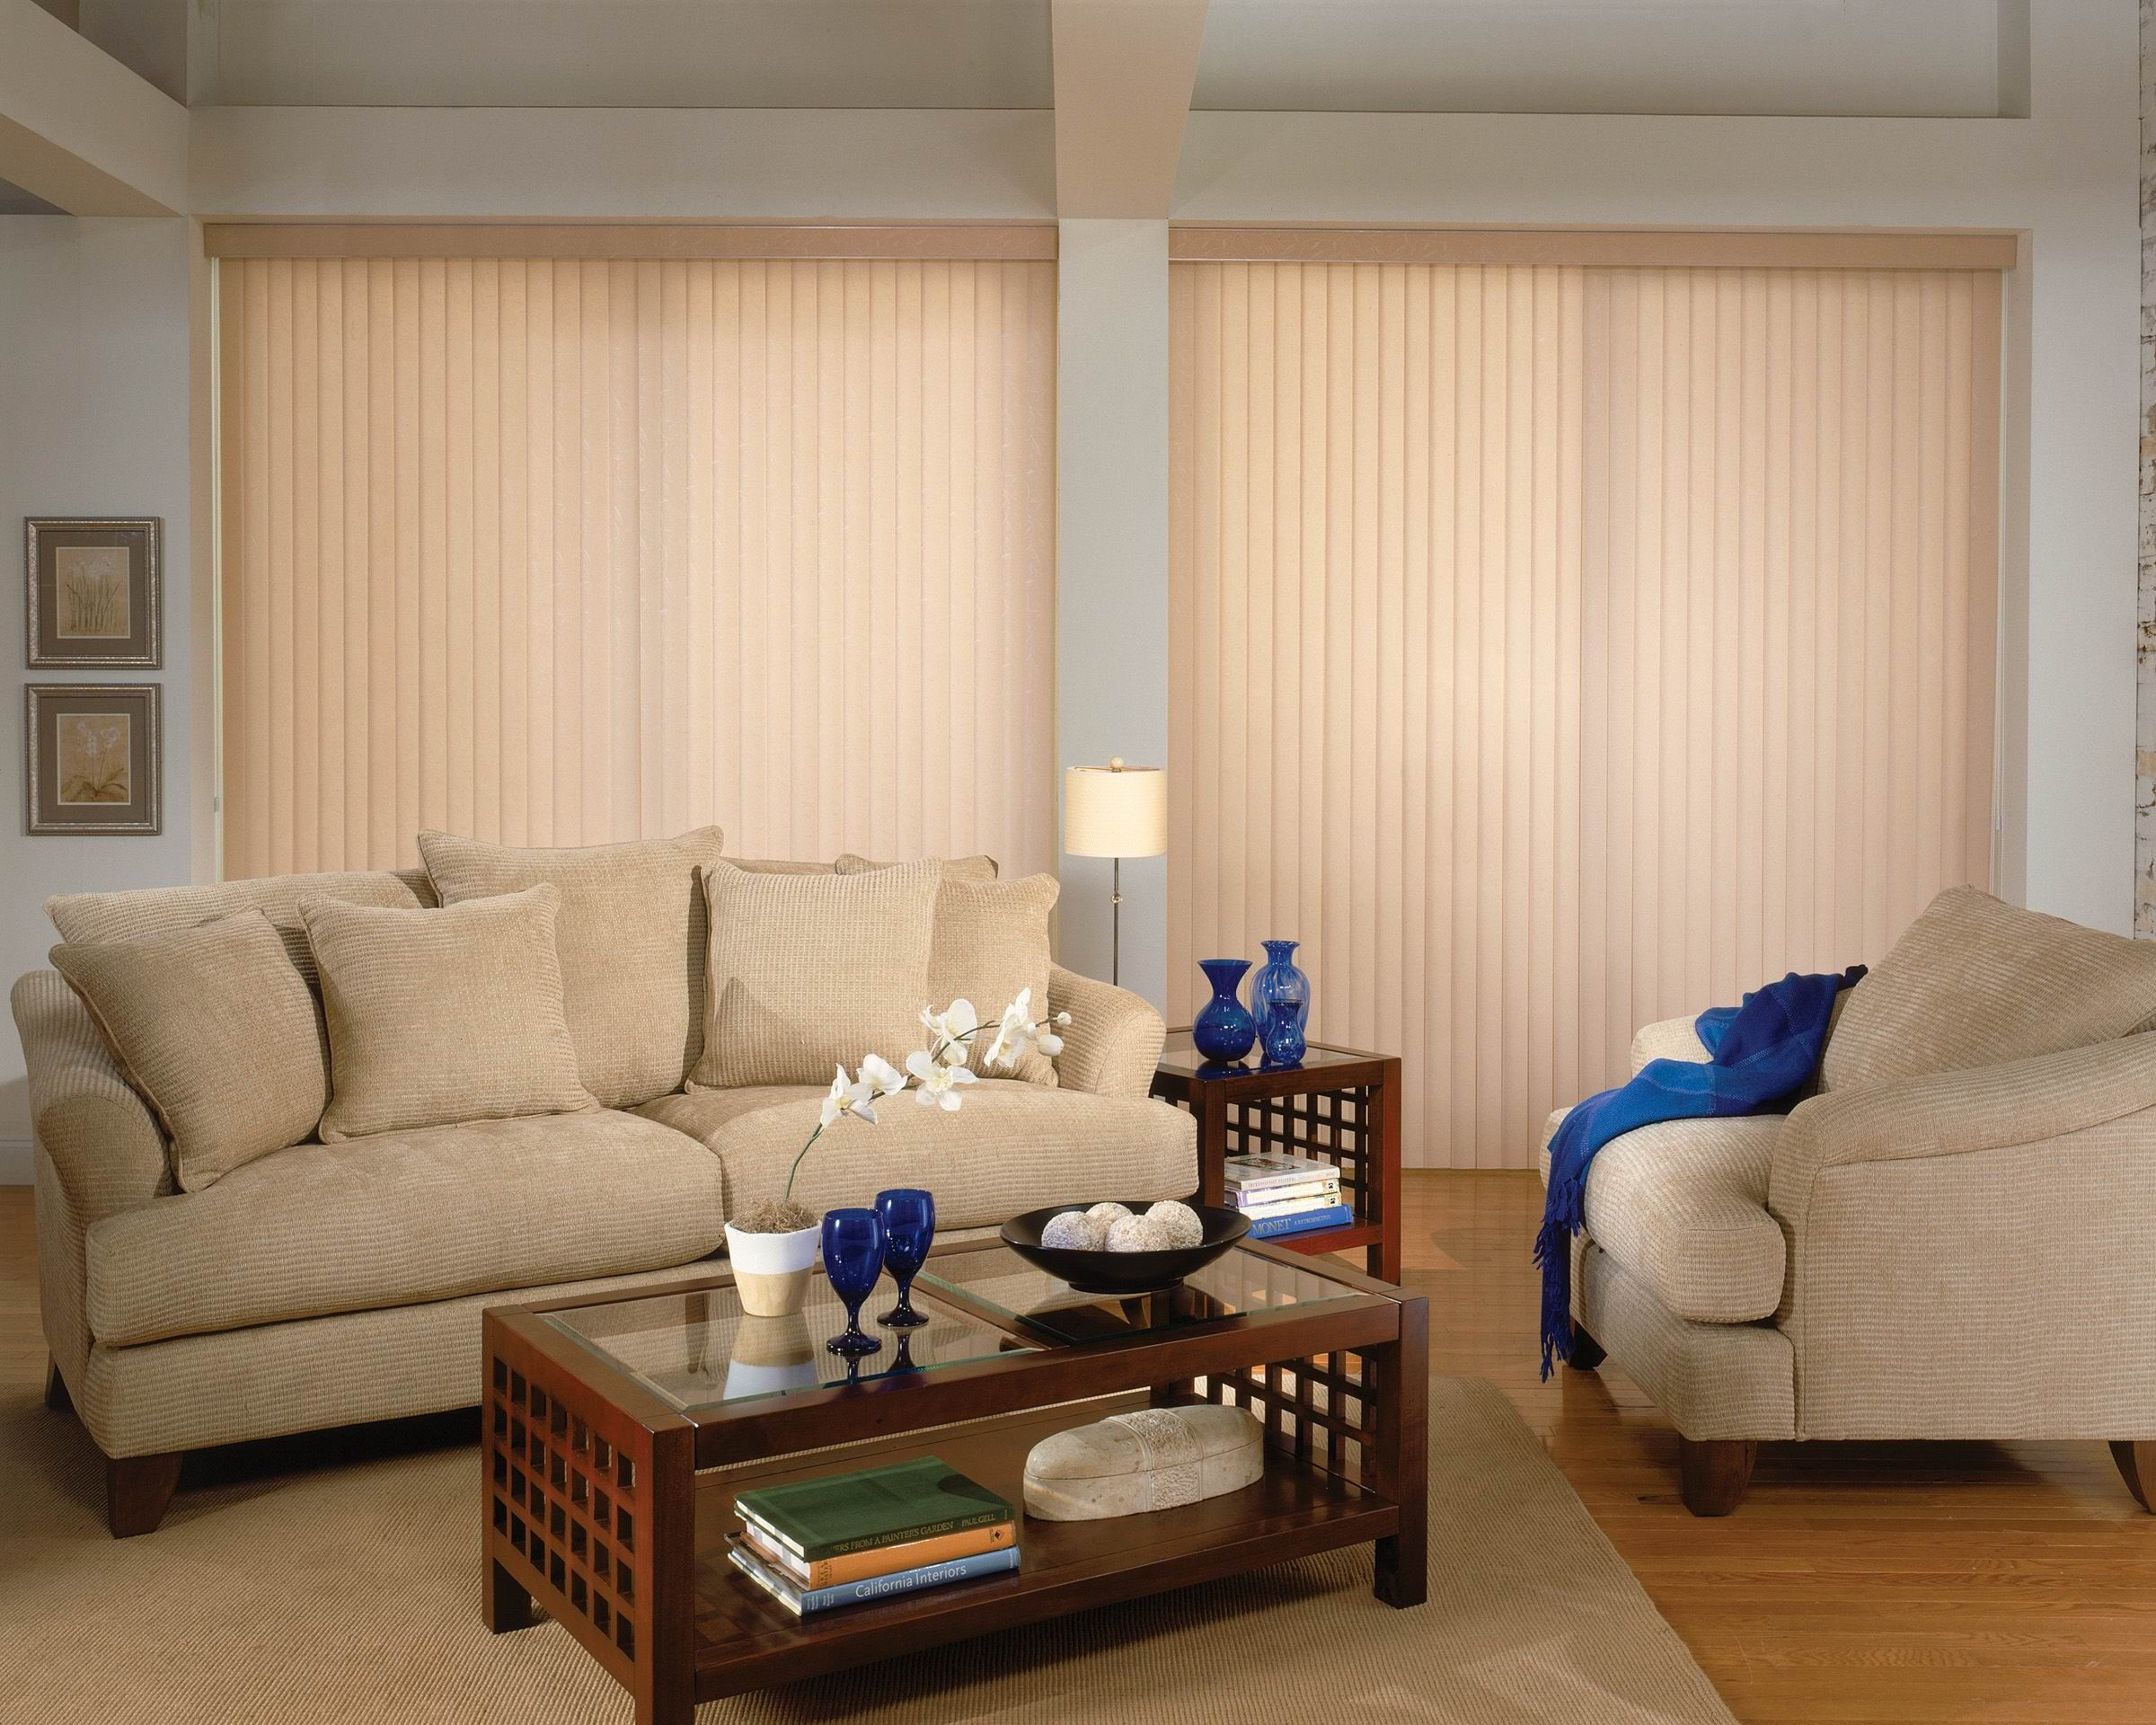 Good old vertical blinds are still a great way to cover your patio